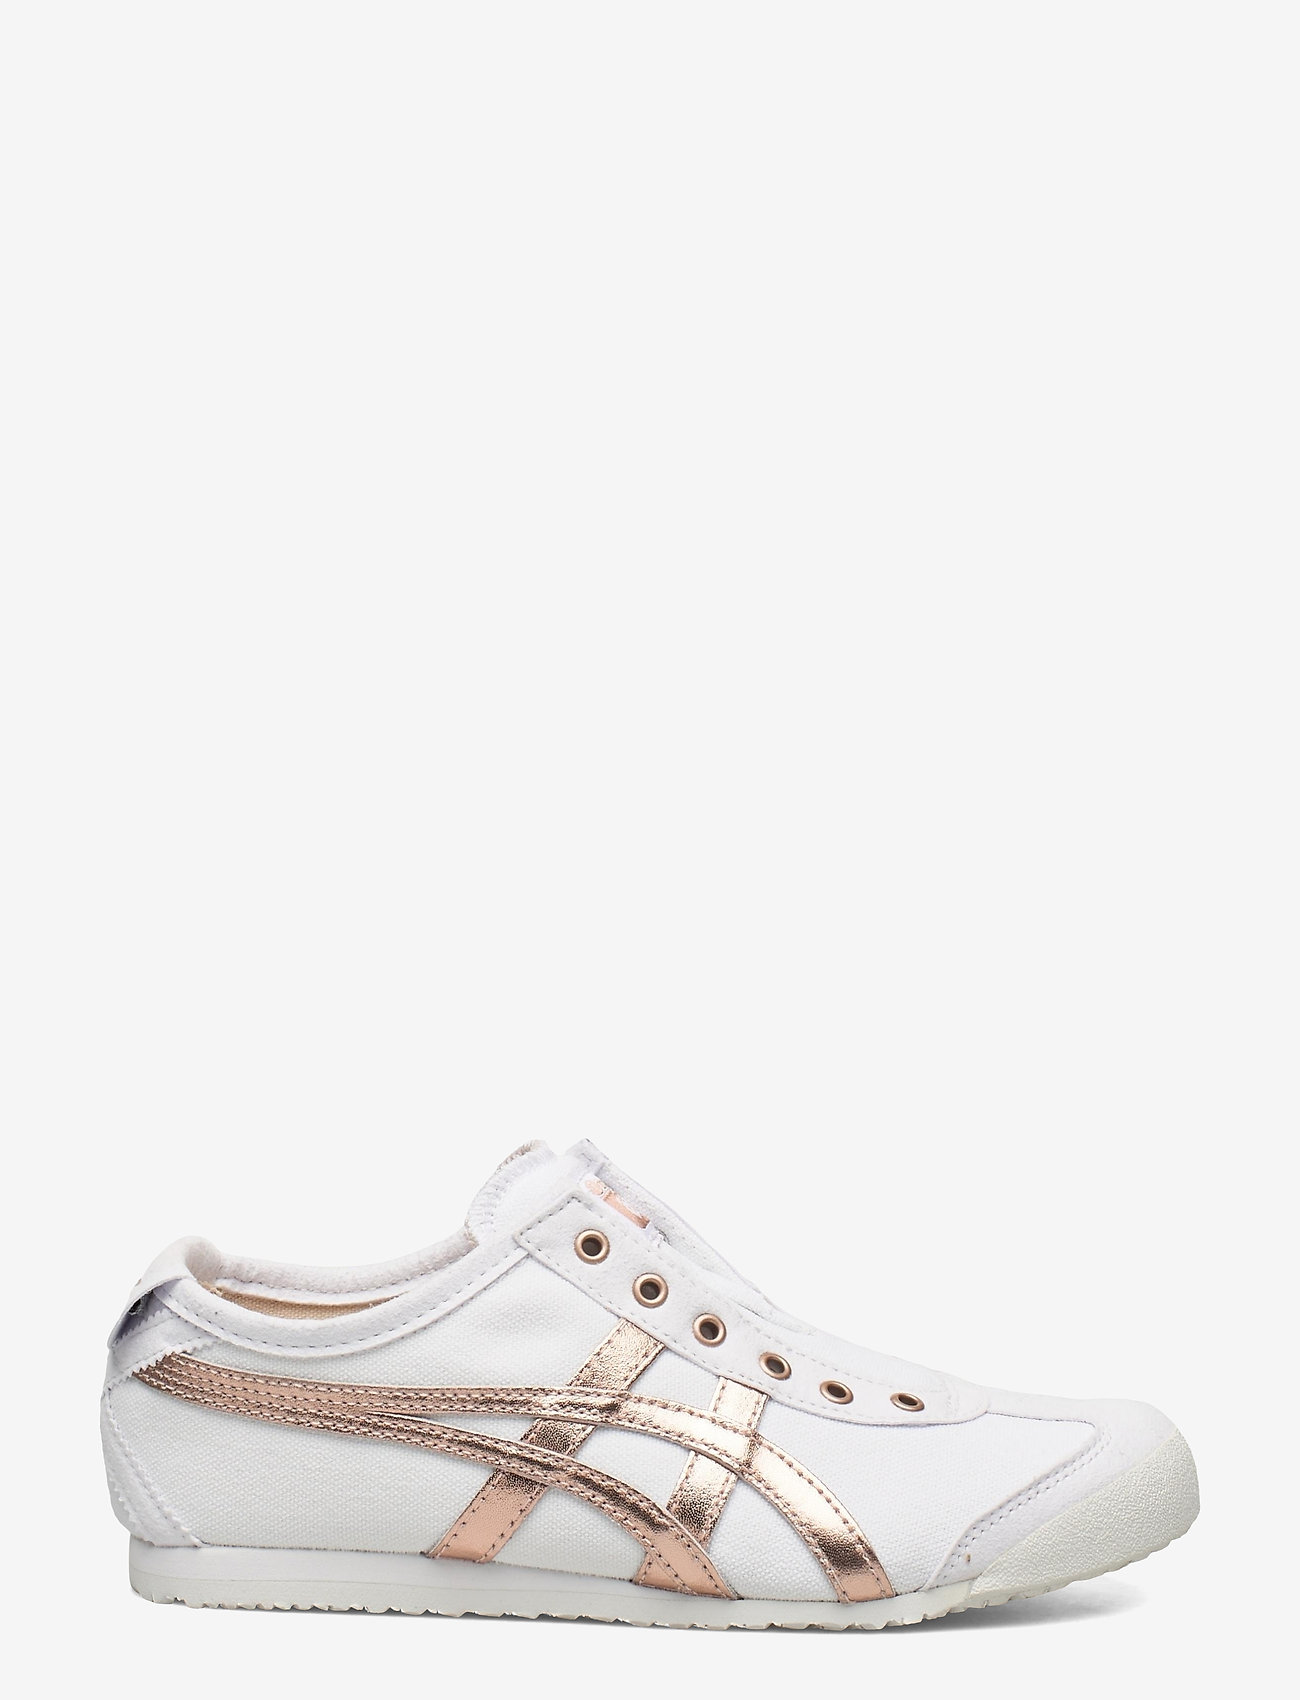 Onitsuka Tiger - MEXICO 66 SLIP-ON - sneakers - white/rose gold - 1